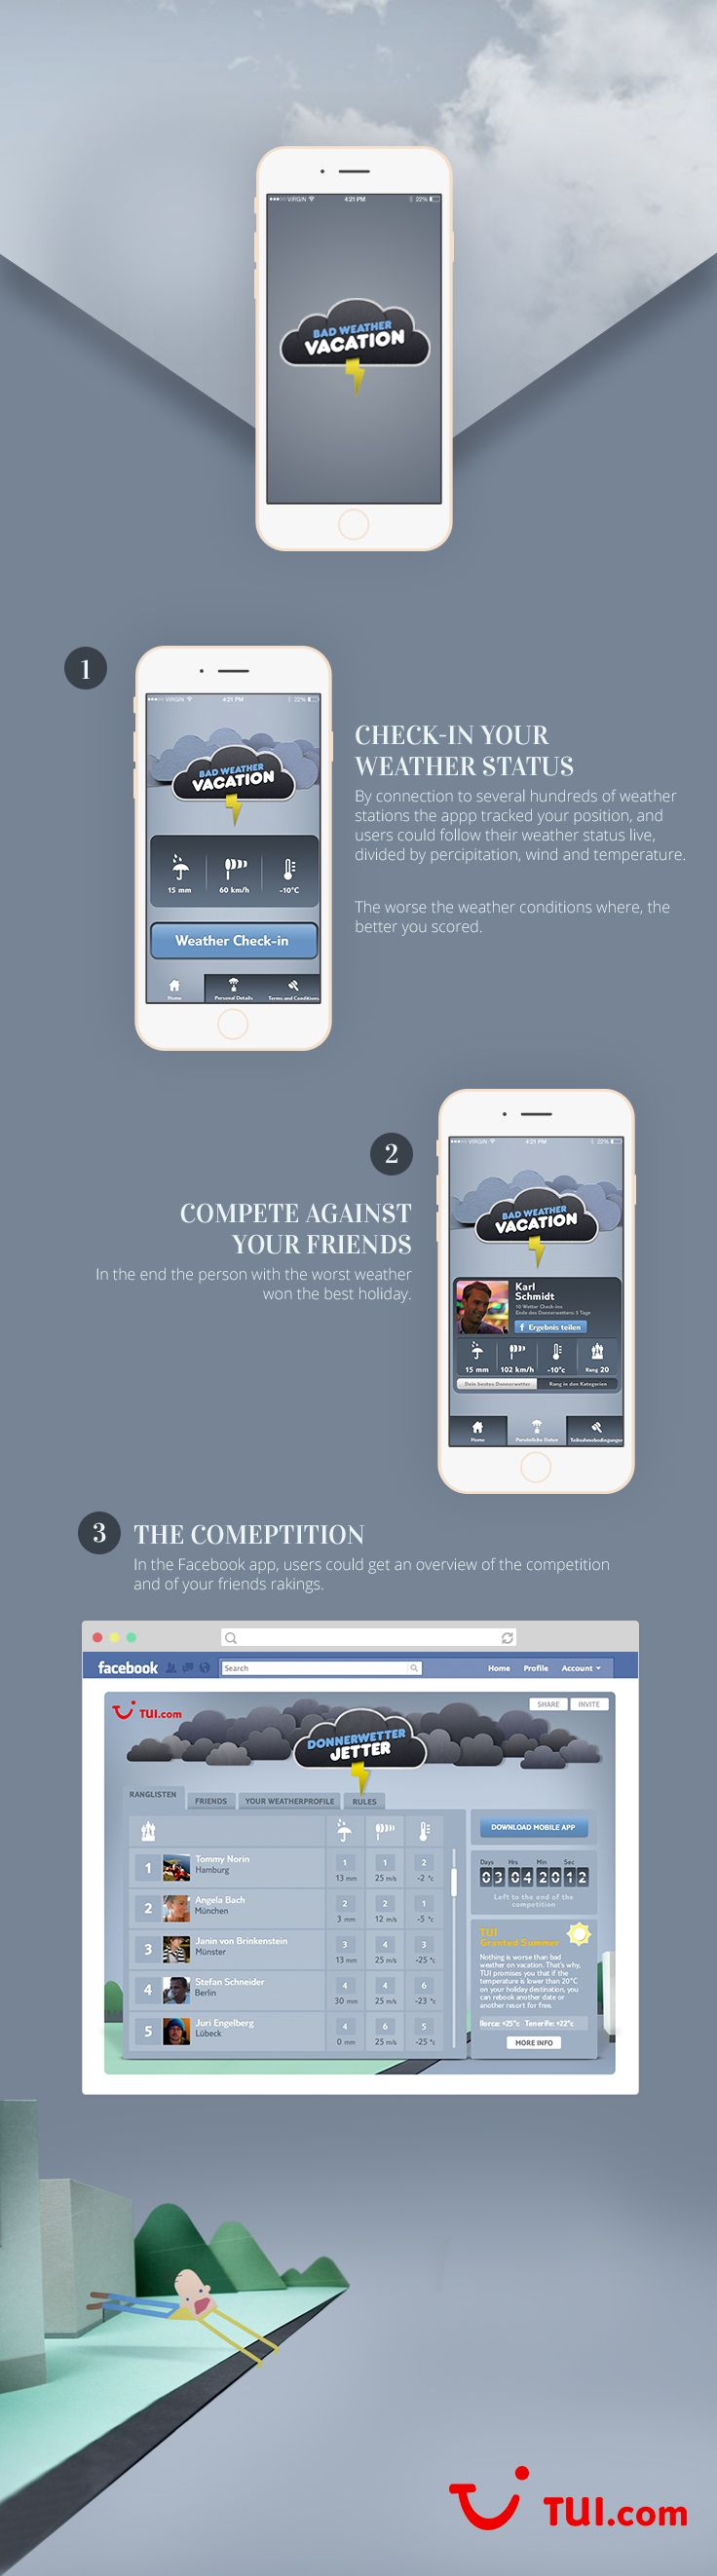 The Bad Weather Vacation app. A competition about who is experiencing the worst weather.  By TUI travels